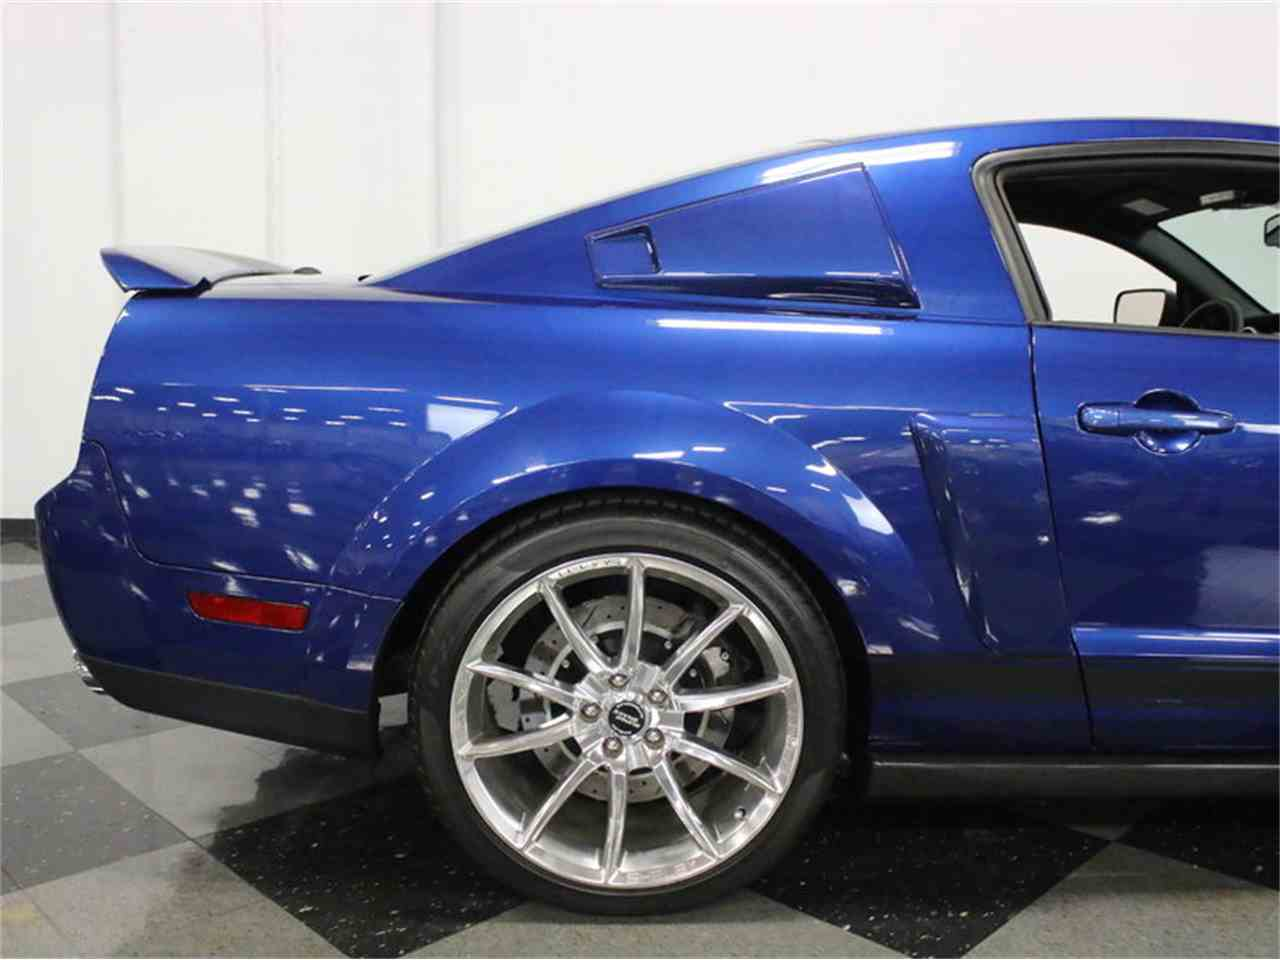 Ford Mustang Shelby Gt500 Super Snake Blue. Interesting Ford Mustang ...